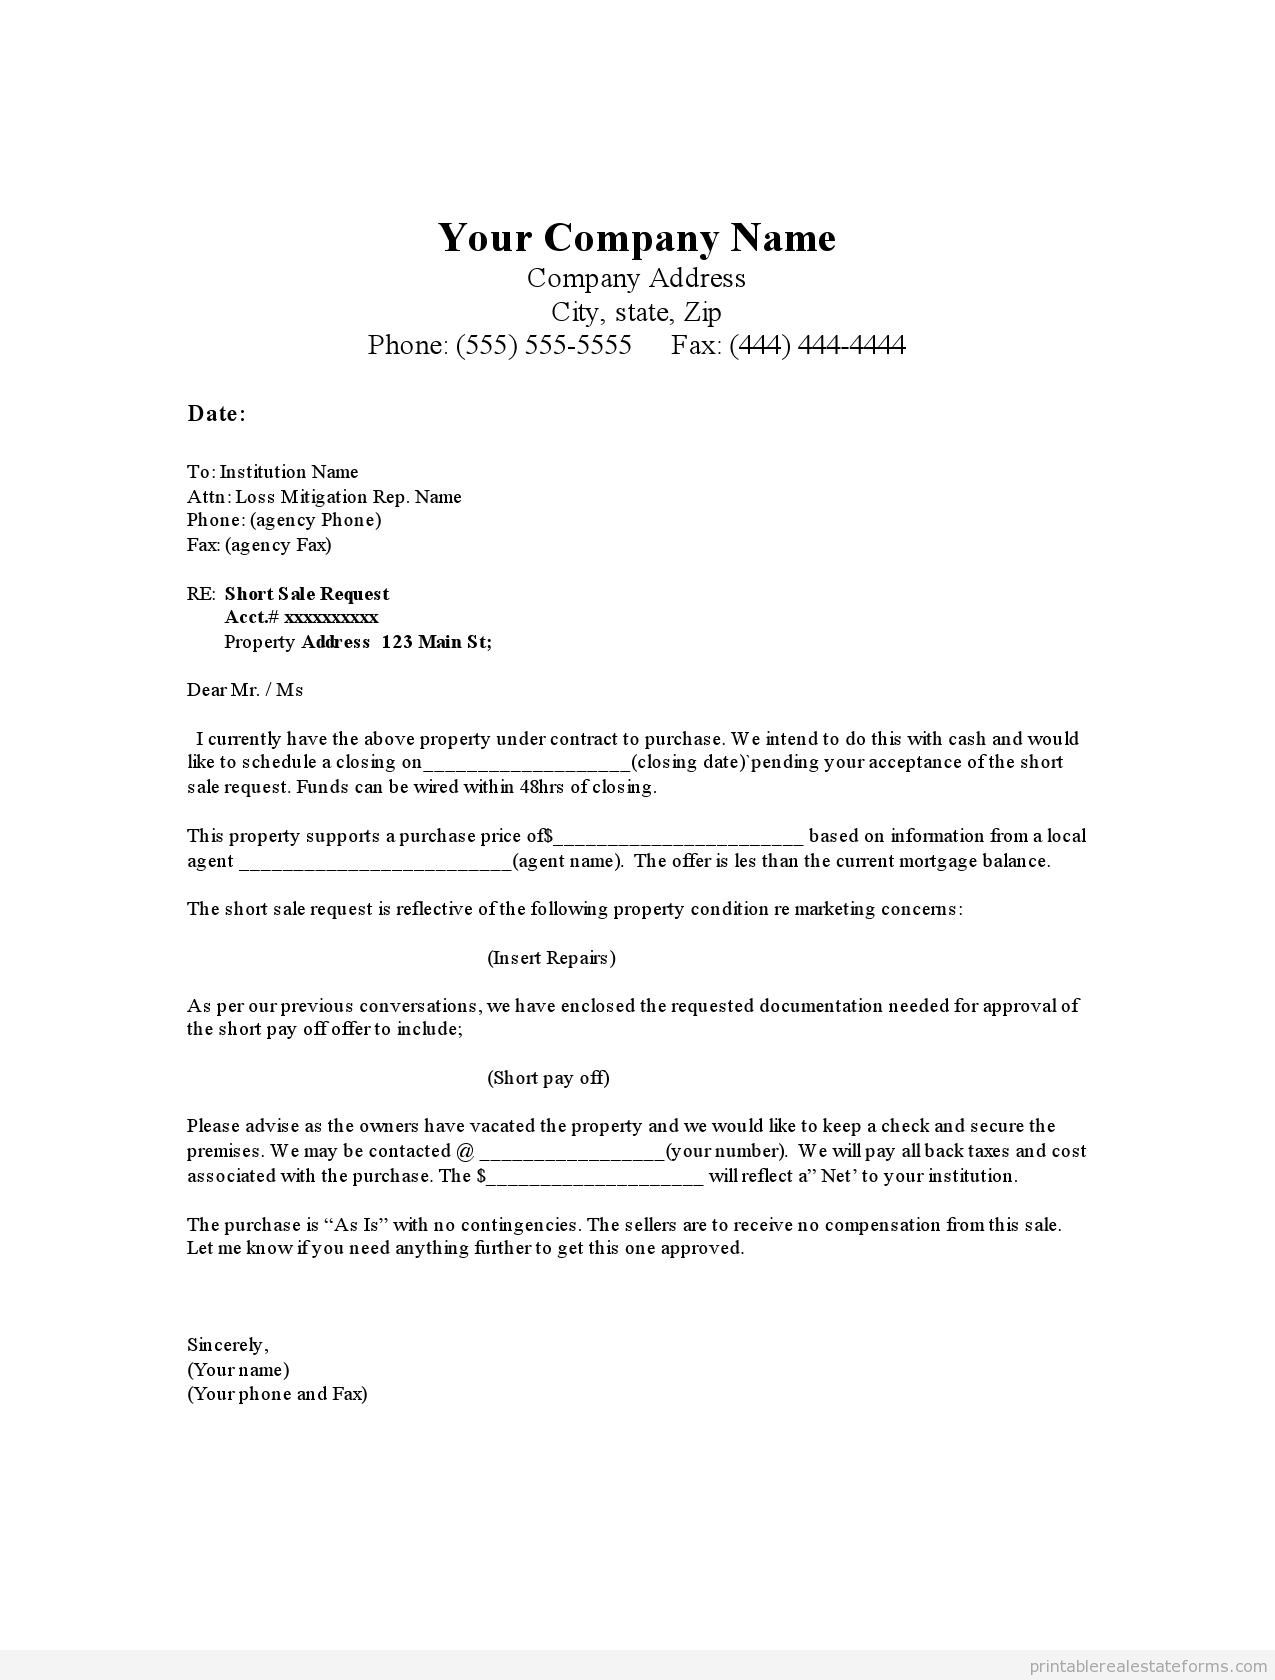 Sample real estate offer letter template example pdf for How to get money to buy land